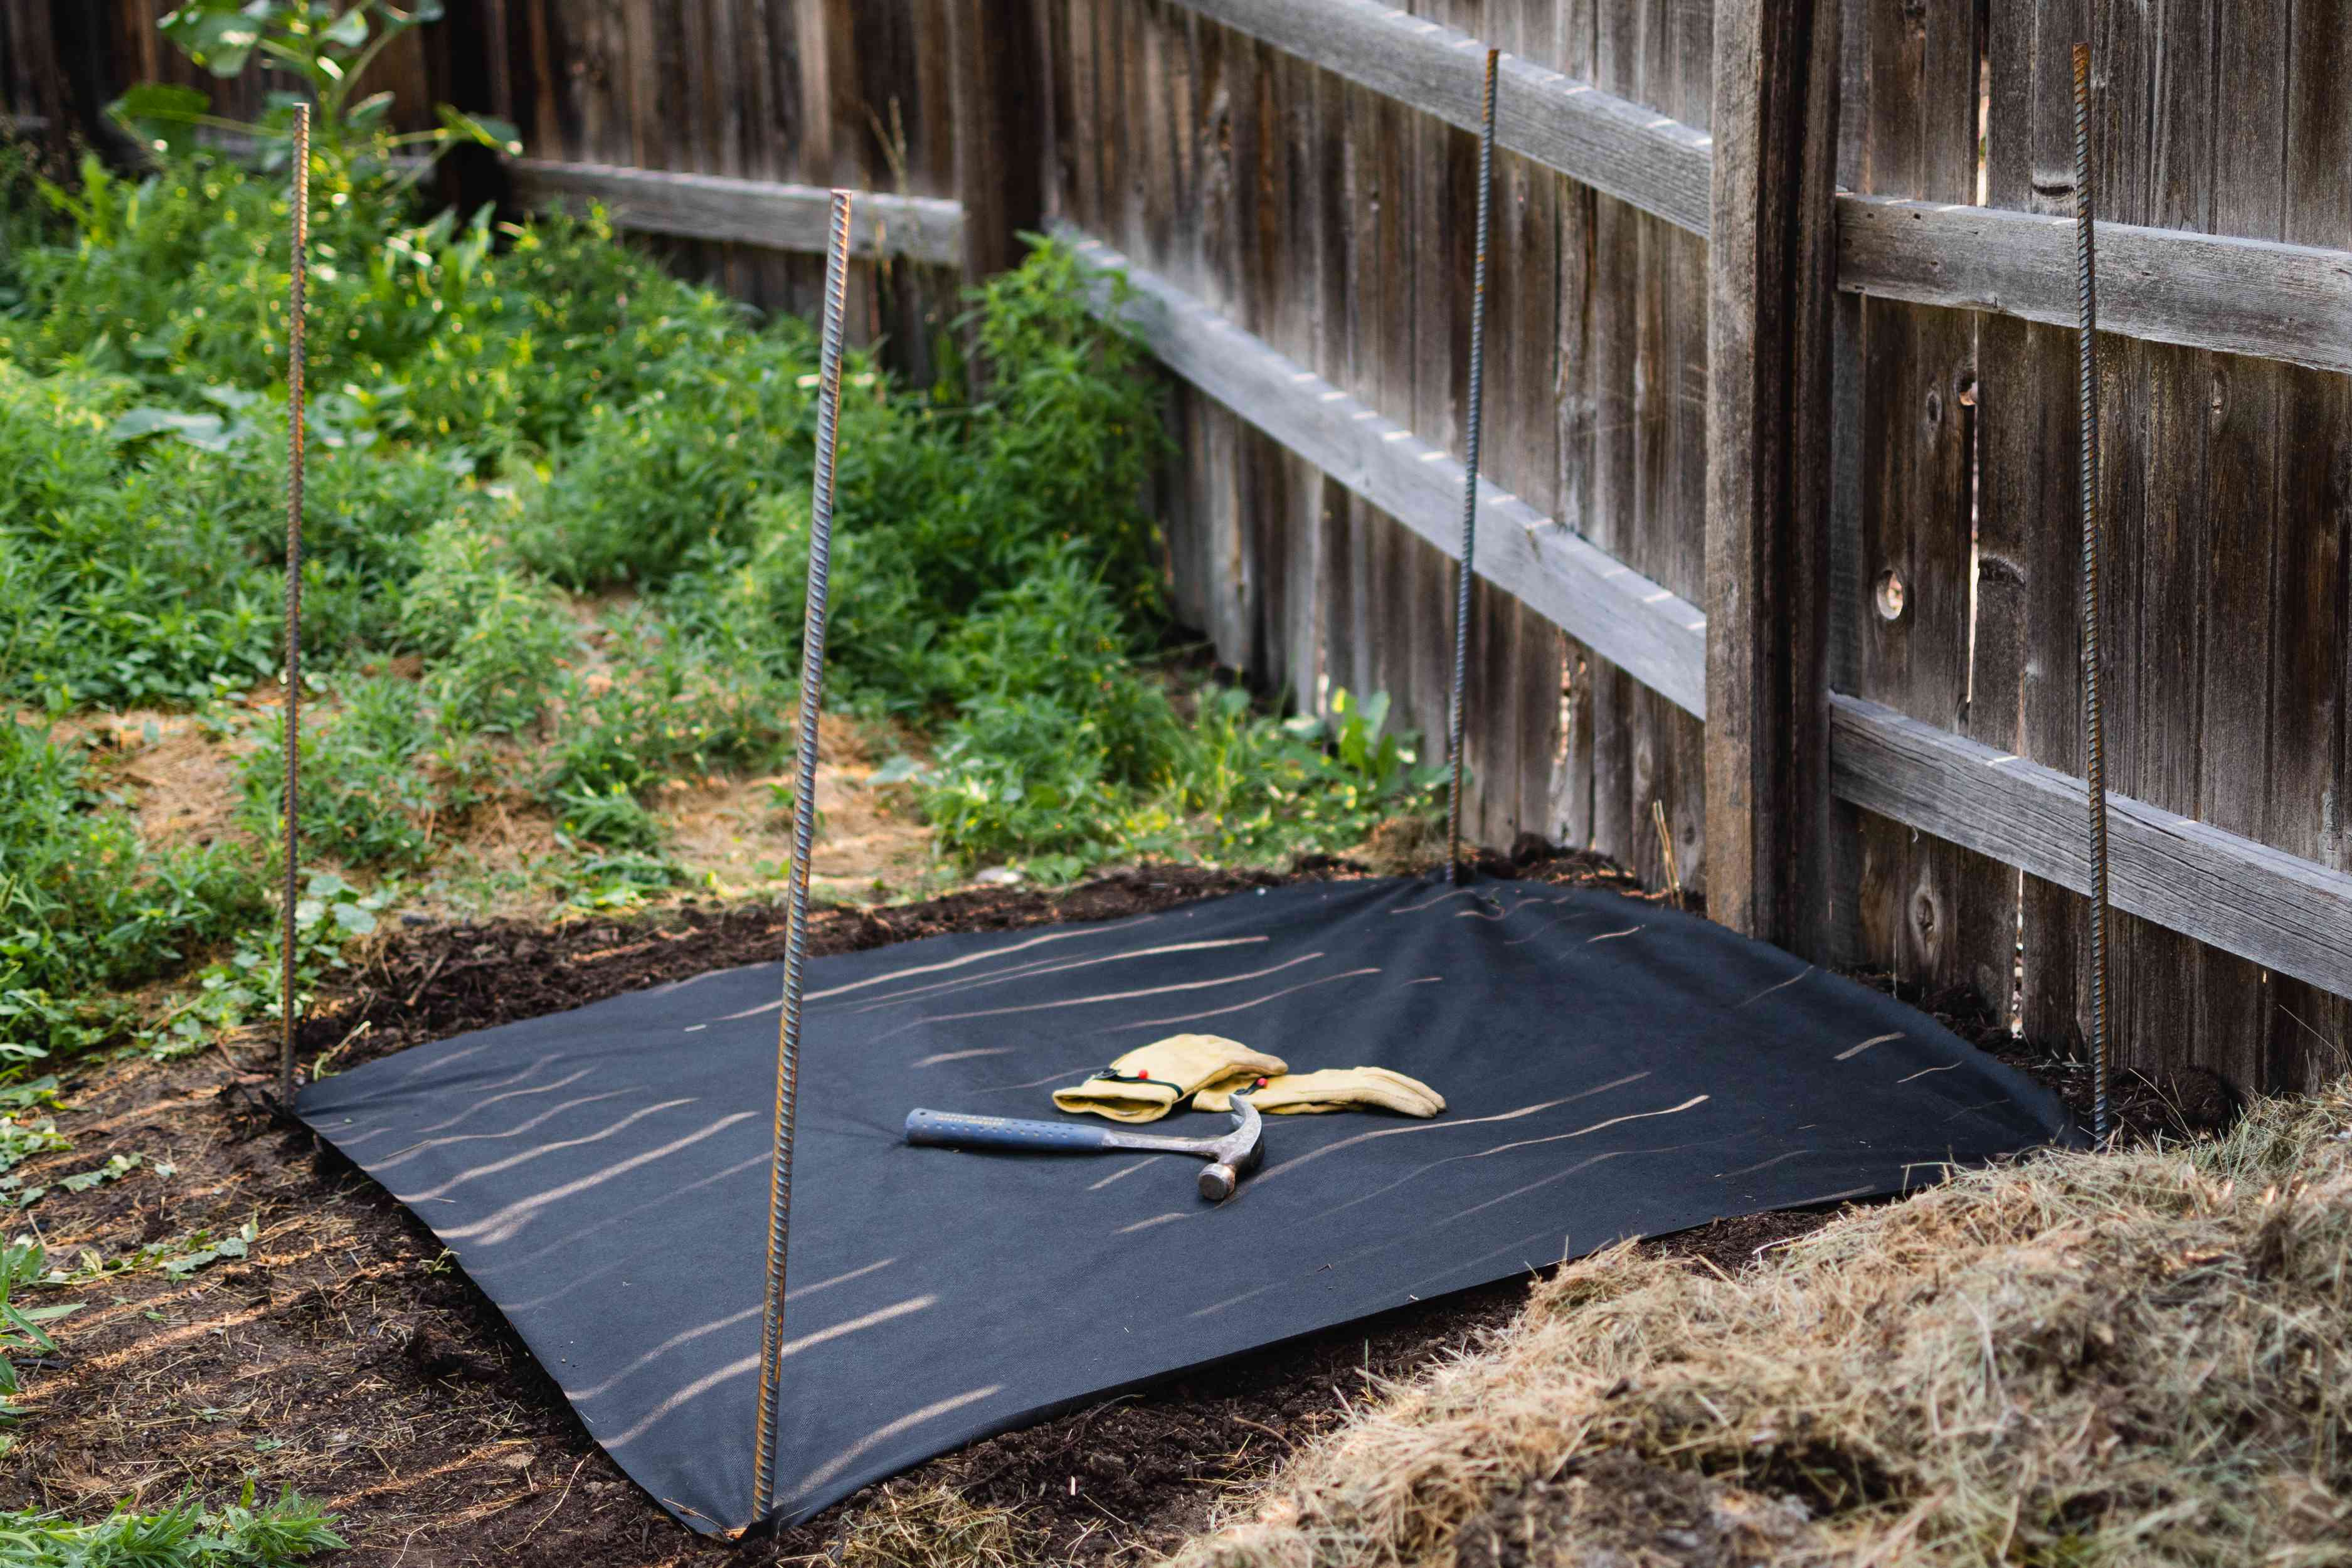 Rebar poles staked in each corner of weed cloth of composting location